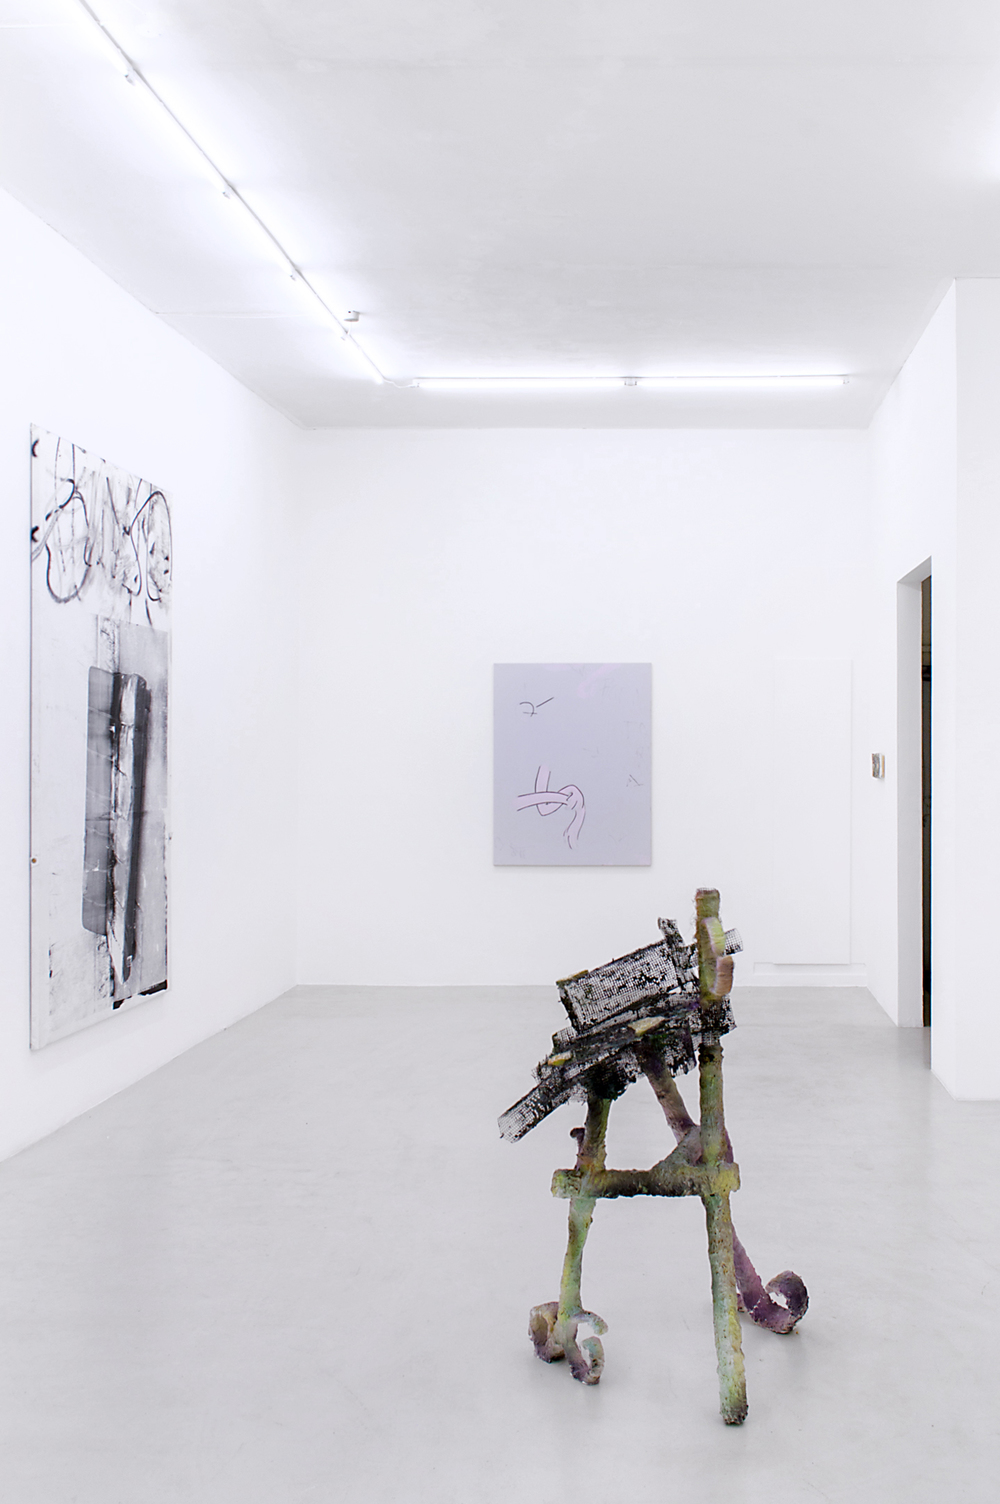 Installation view, Beau Lauss, Last Resort